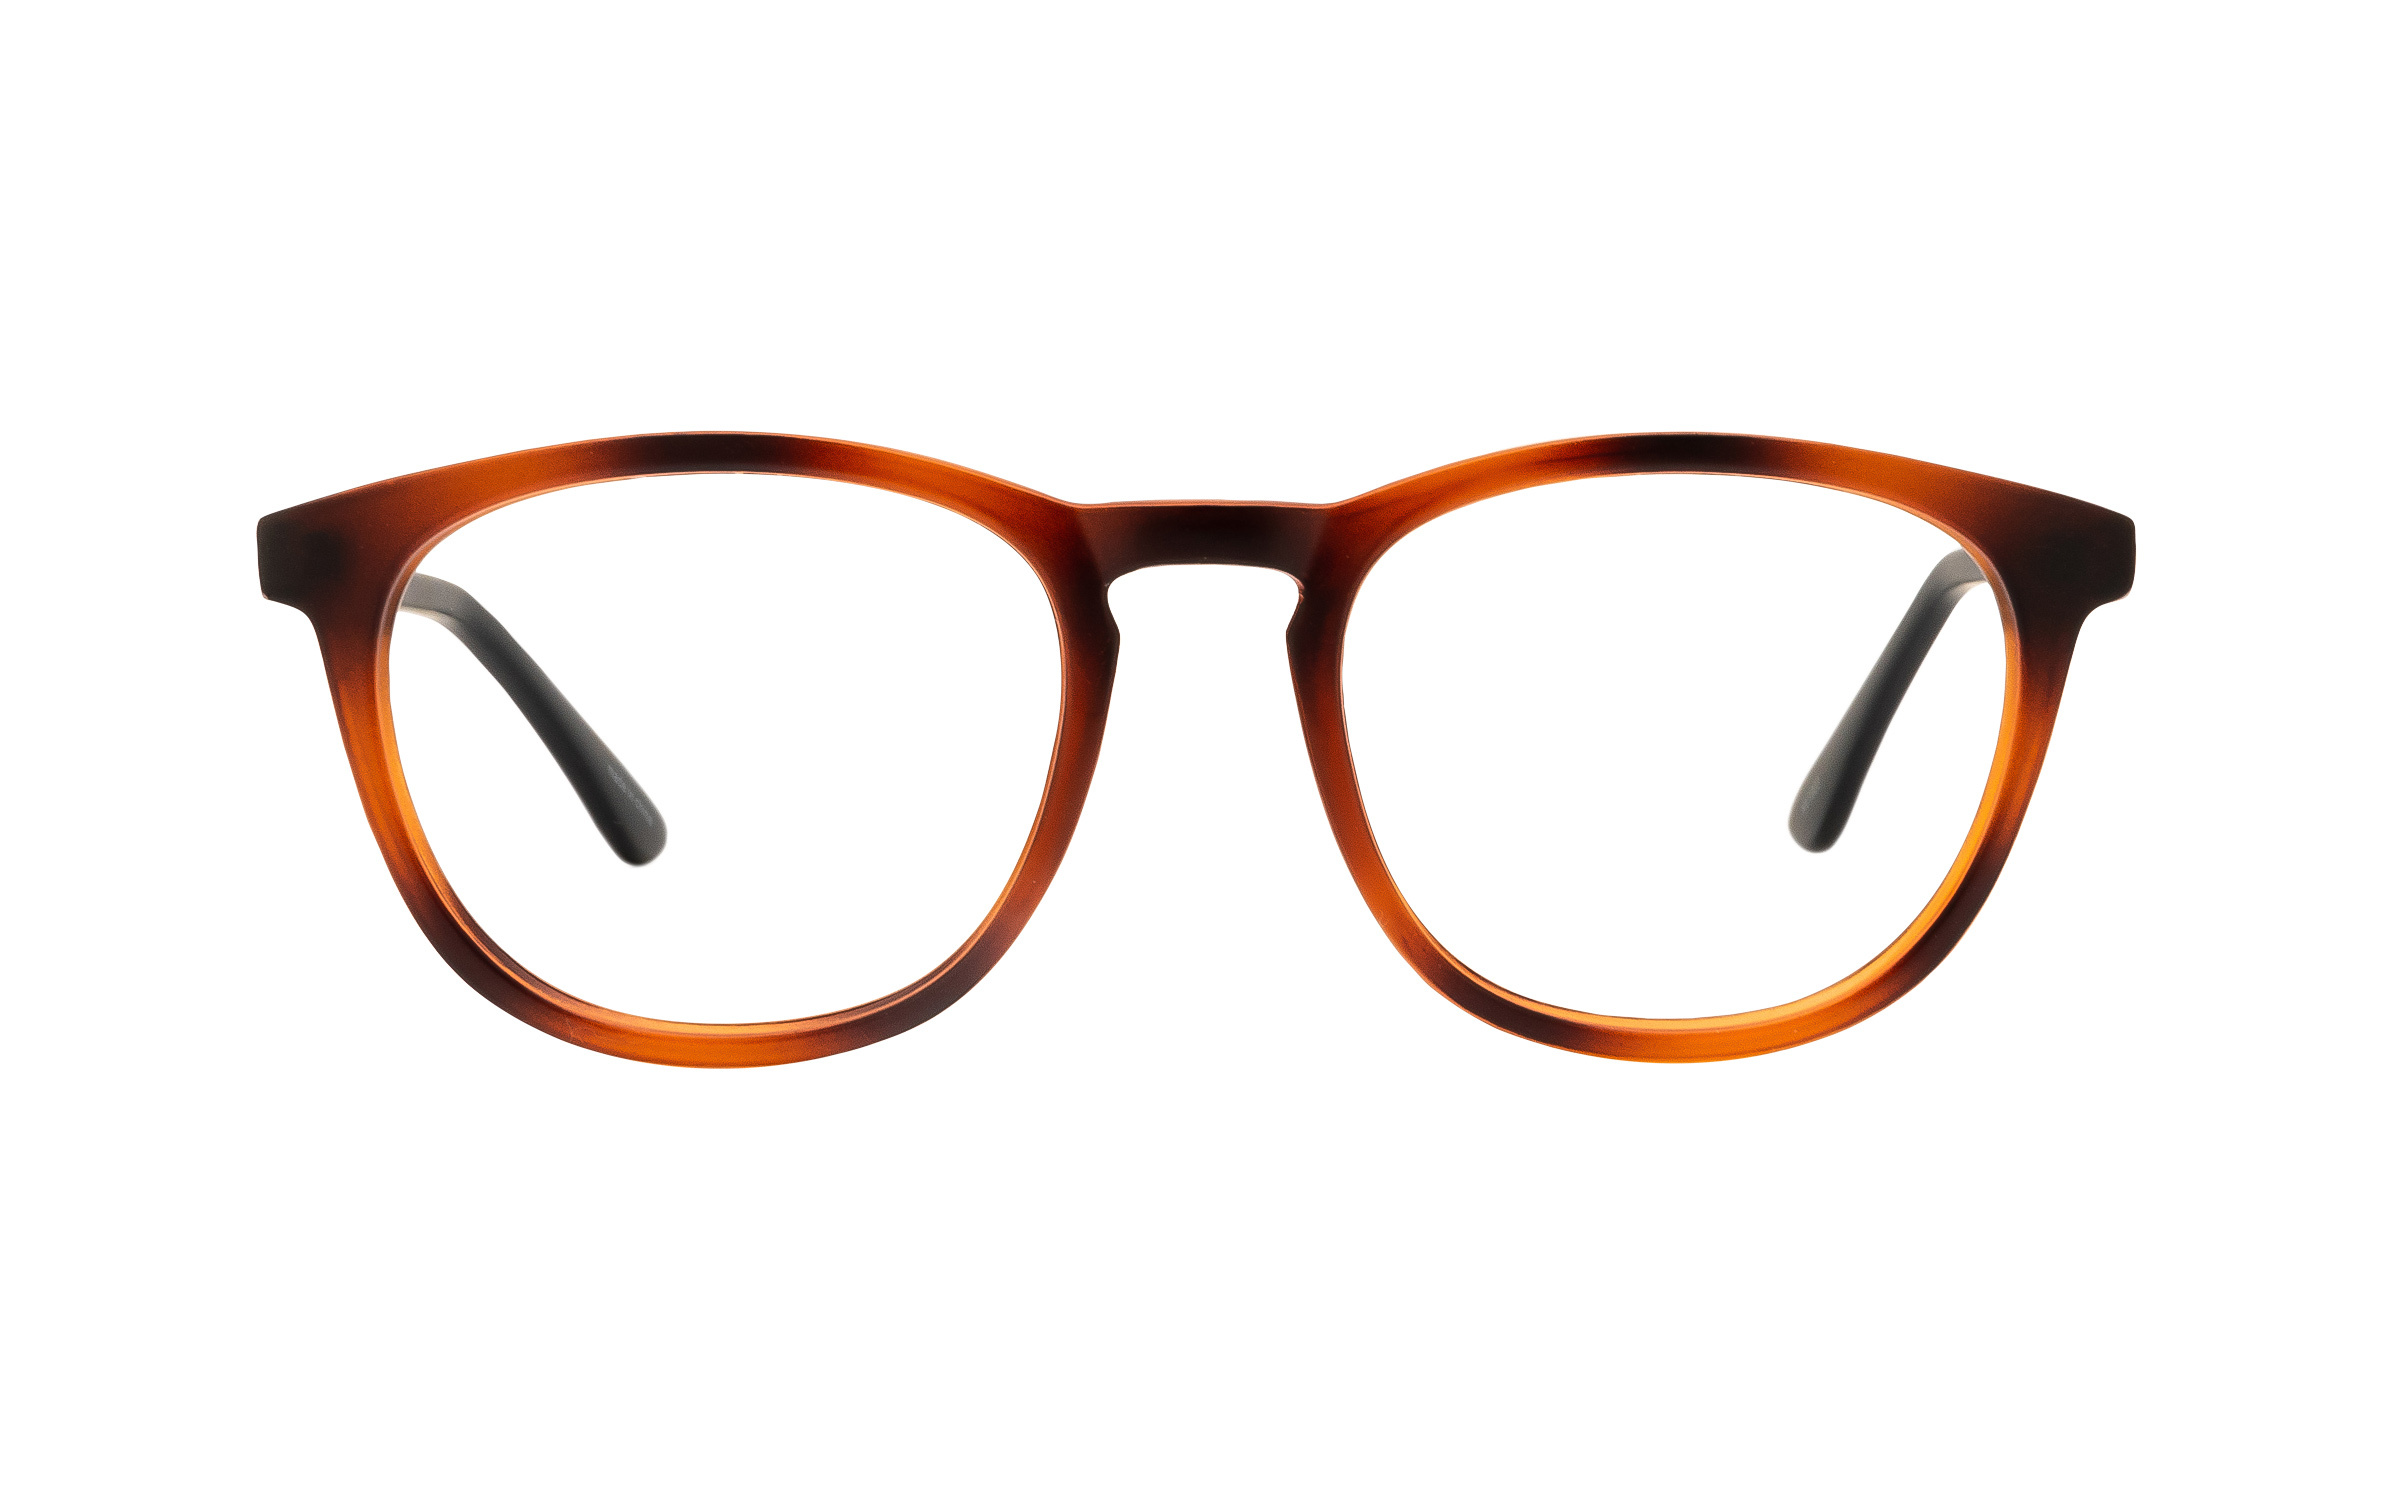 Clearly Basics Tracadie CLS036 C01 (52) Eyeglasses and Frame in Matte Tortoise/Brown - Online Coastal